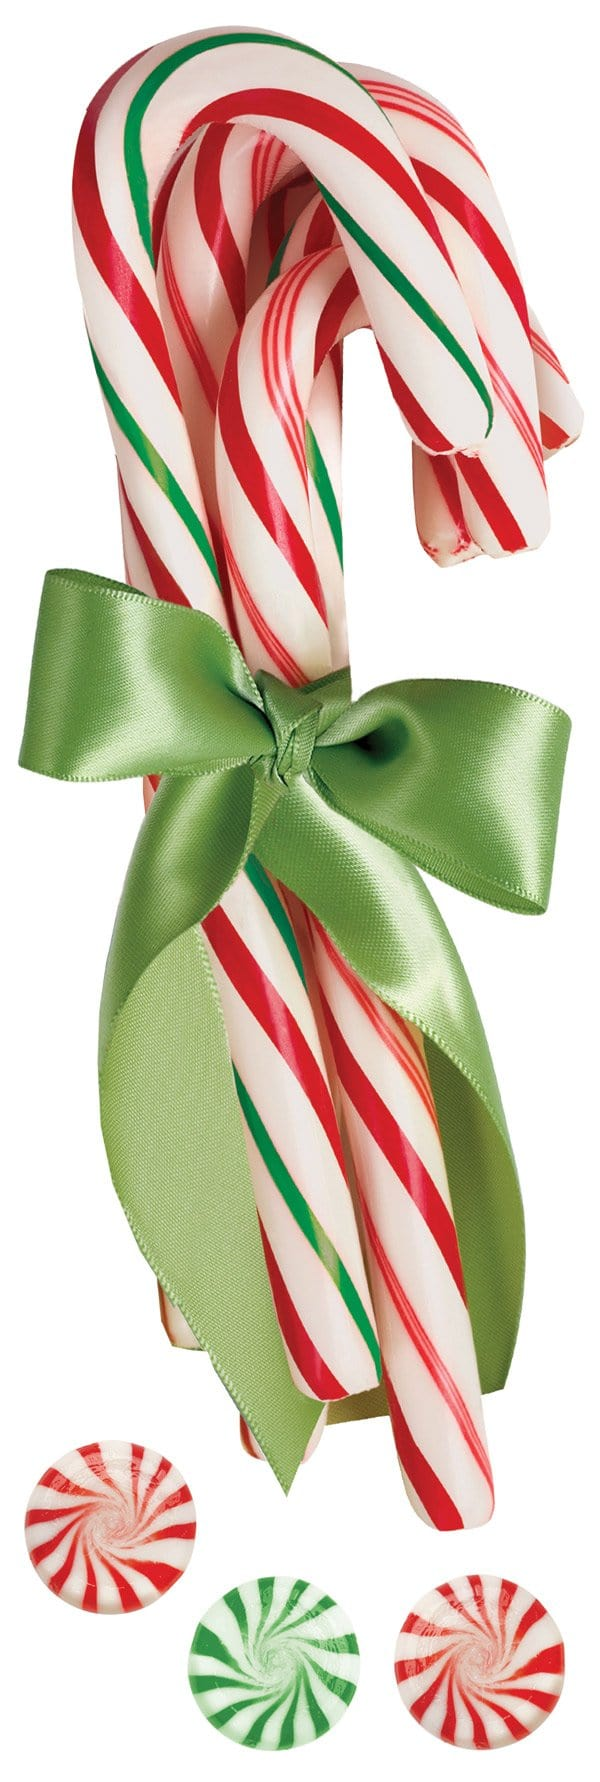 Candy Cane 3D Title sticker